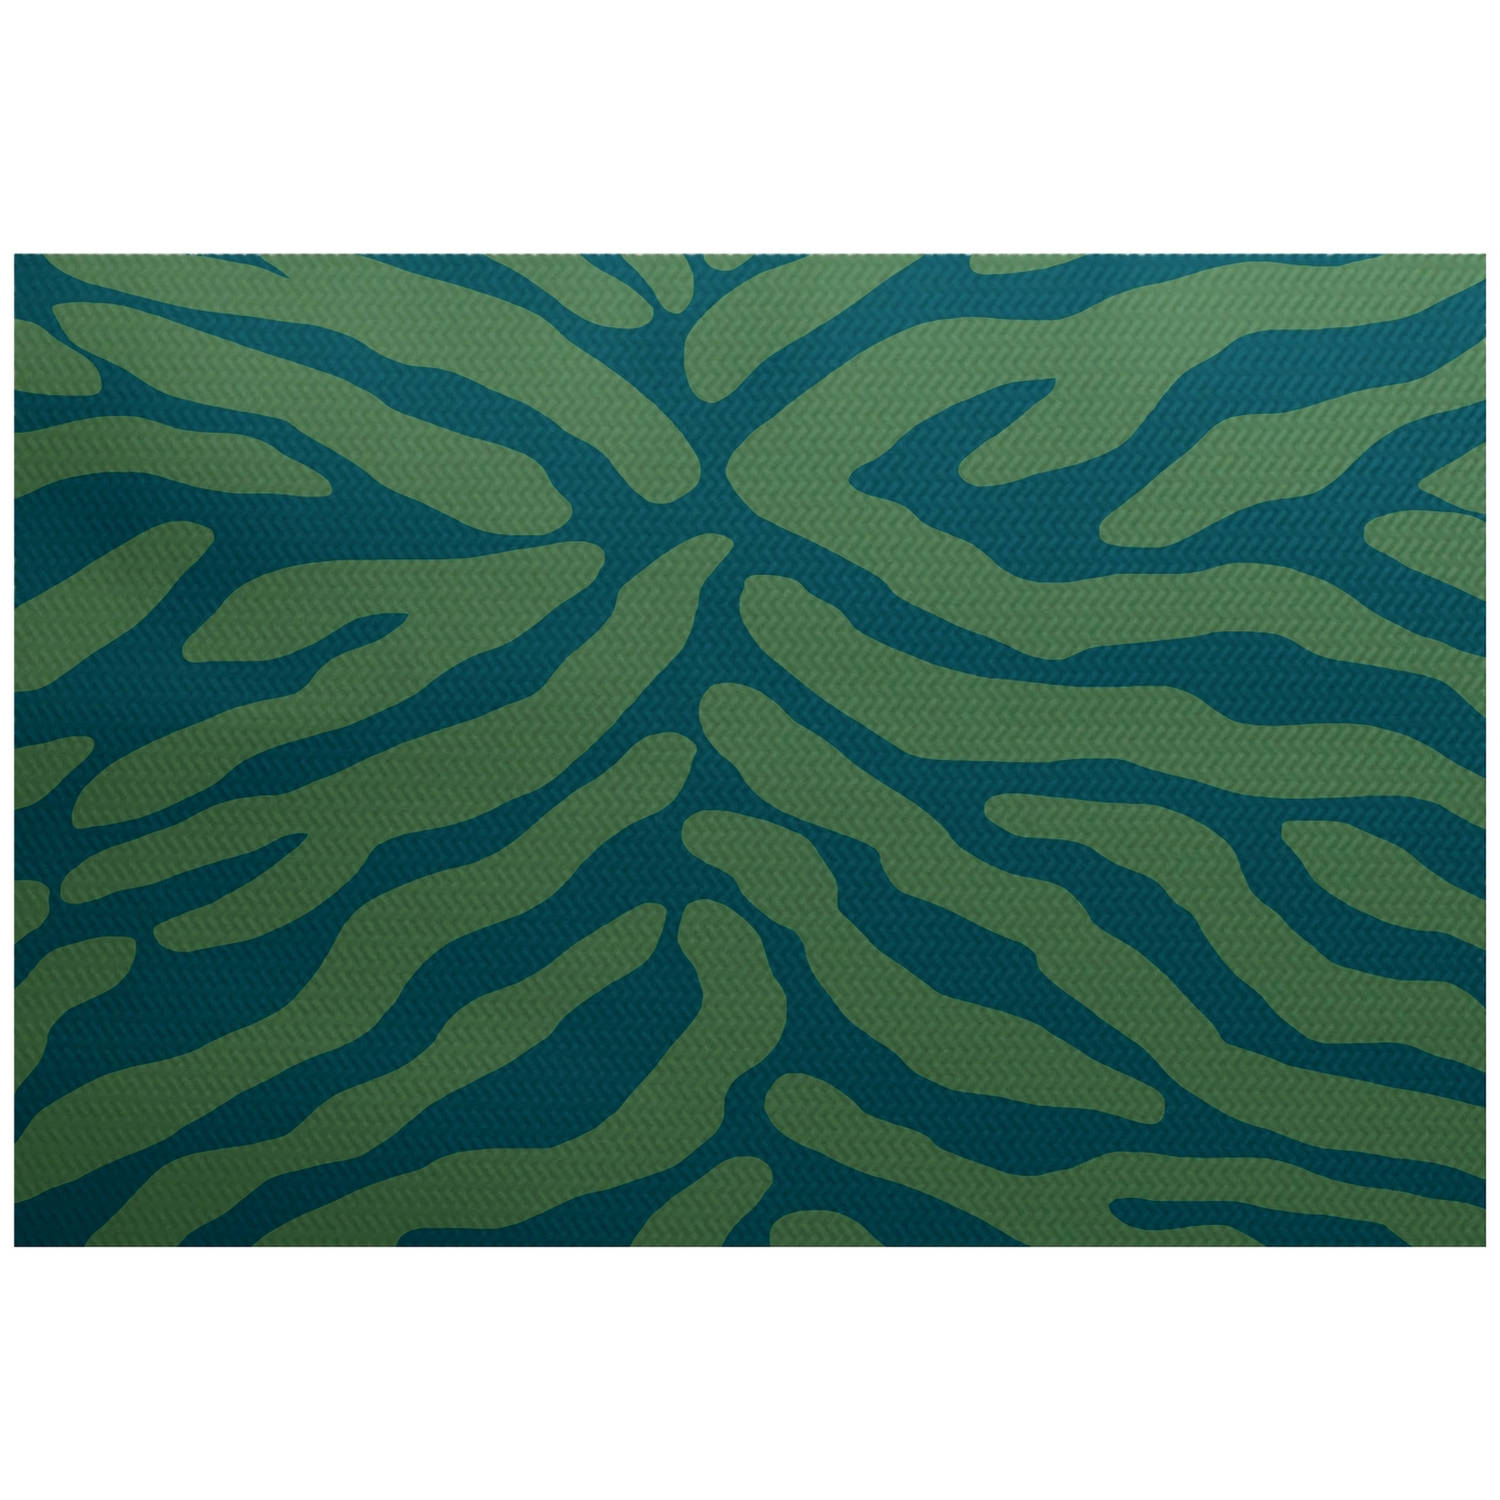 Simply Daisy 3' x 5' Animal Stripe Geometric Print Indoor/Outdoor Rug